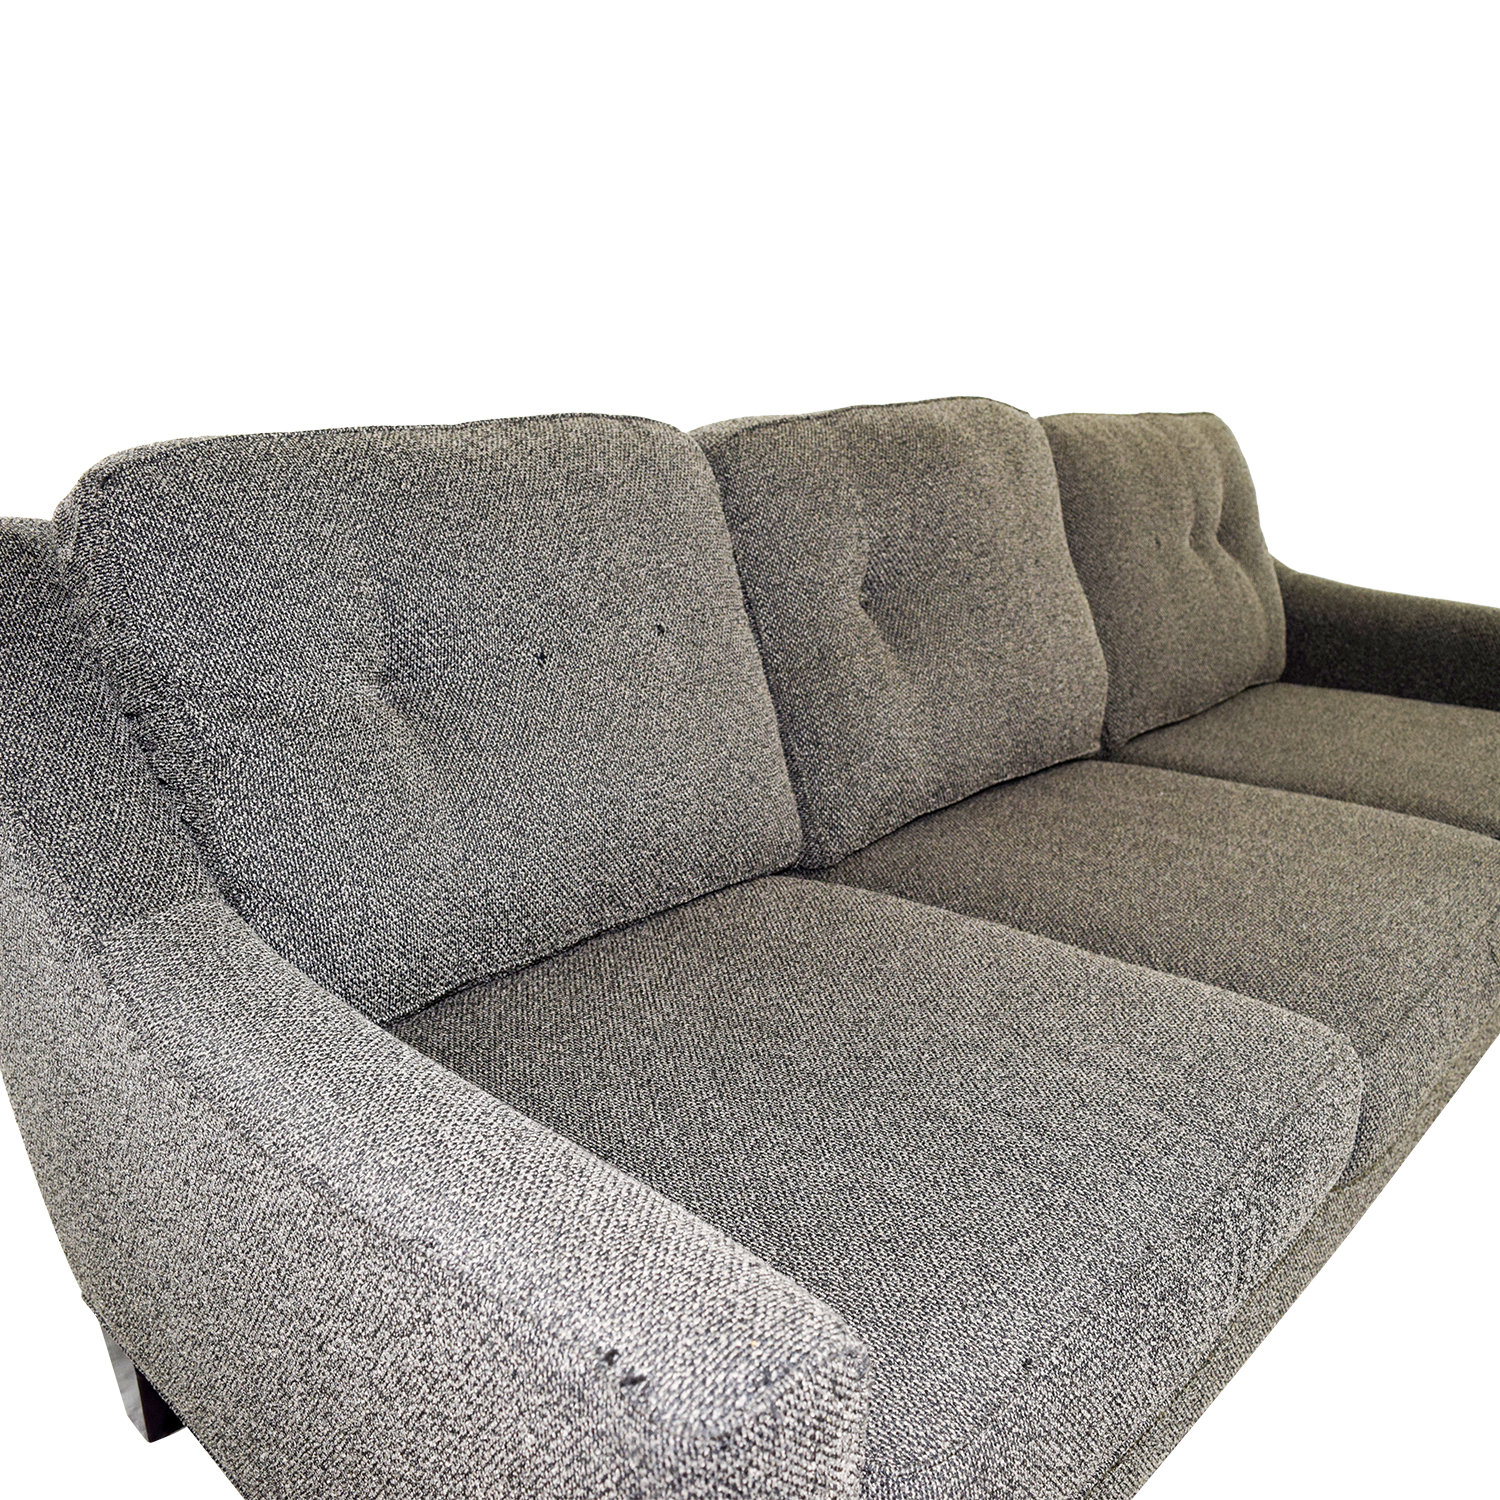 85 Off Cindy Crawford Home Cindy Crawford Home Grey Woven  ~ Cindy Crawford Home Sofa